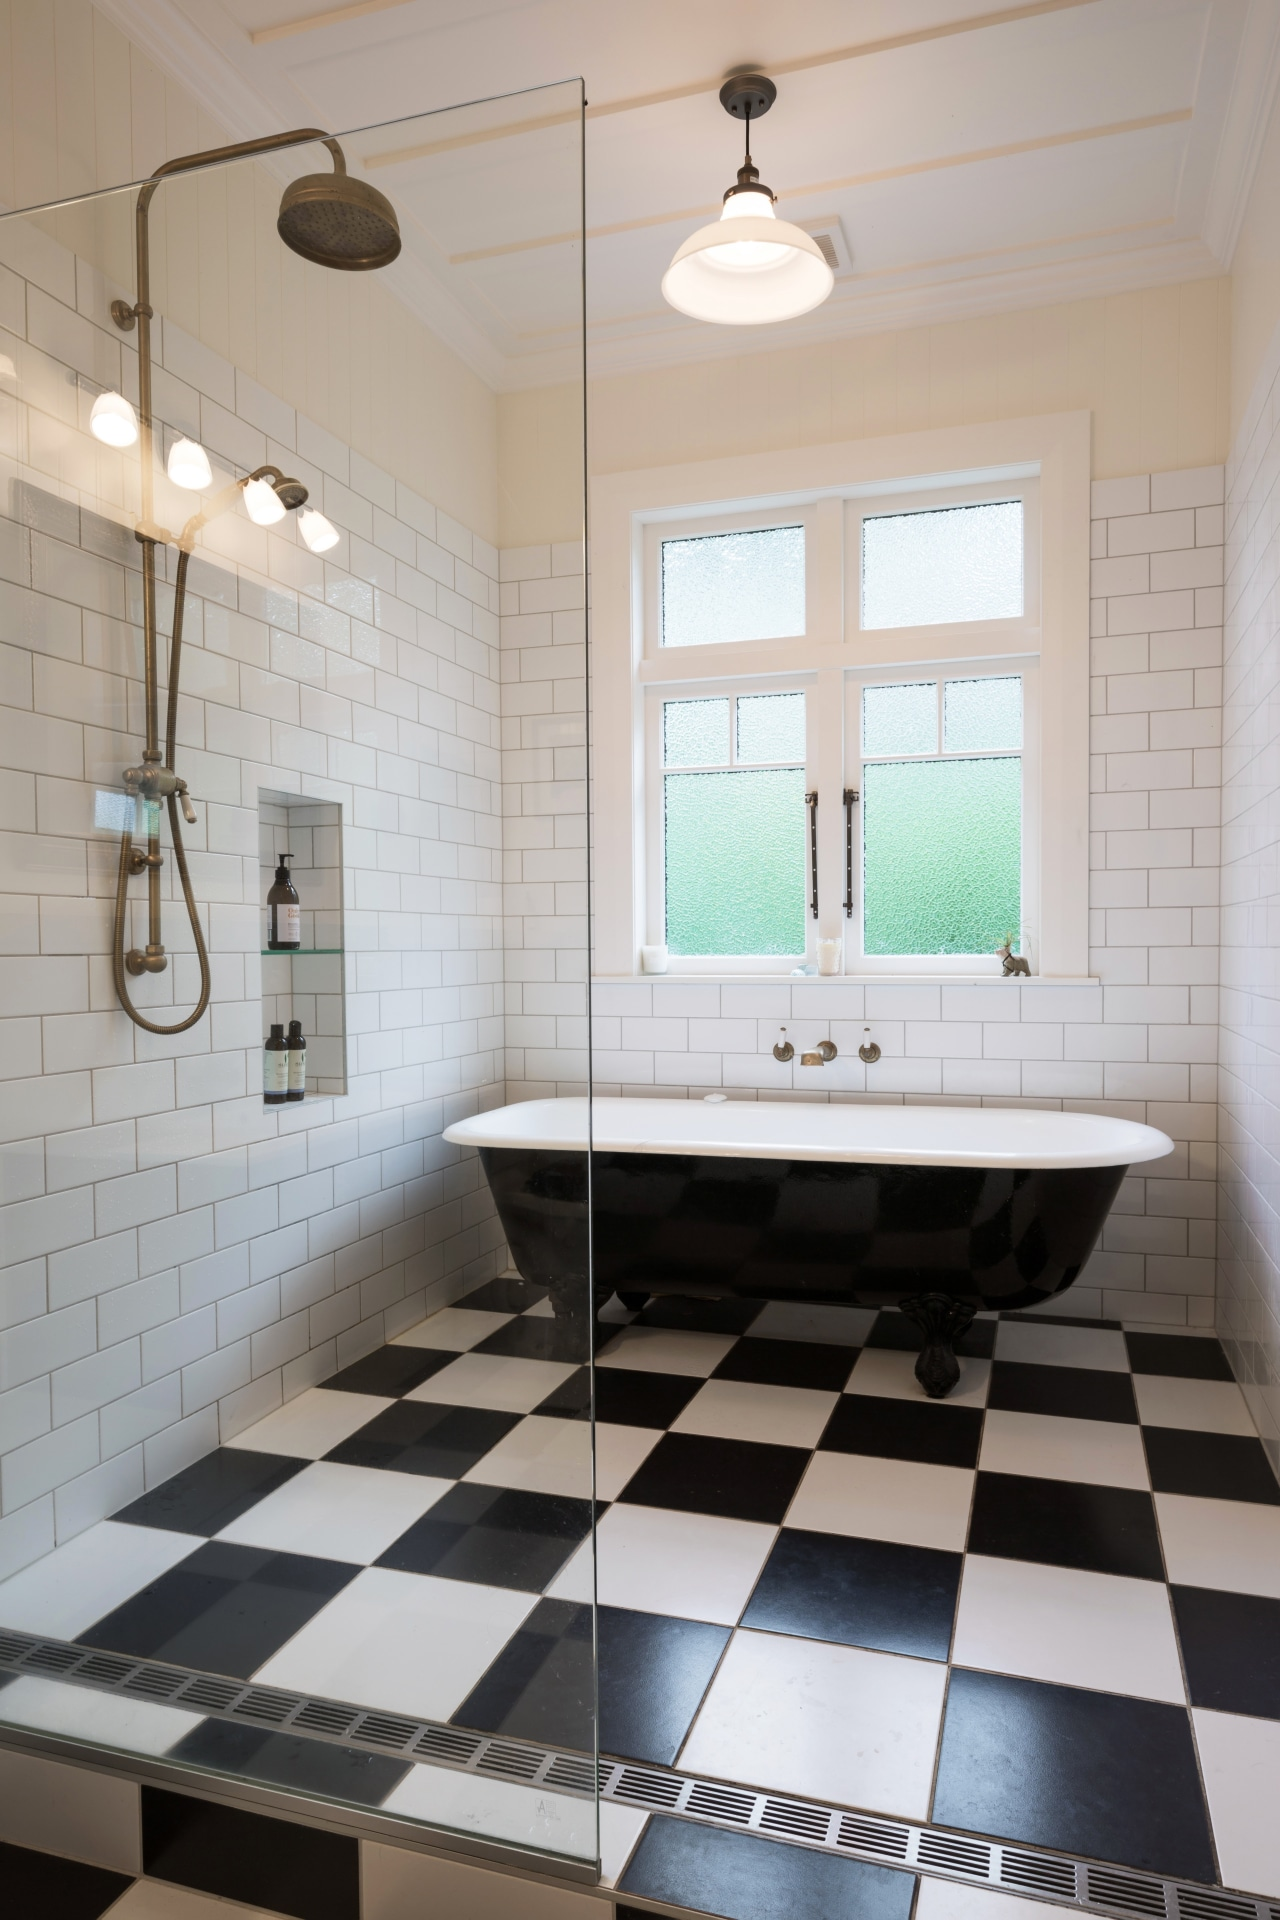 In the family bathroom, the shower had to bathroom, floor, flooring, home, interior design, plumbing fixture, room, sink, tile, wall, gray